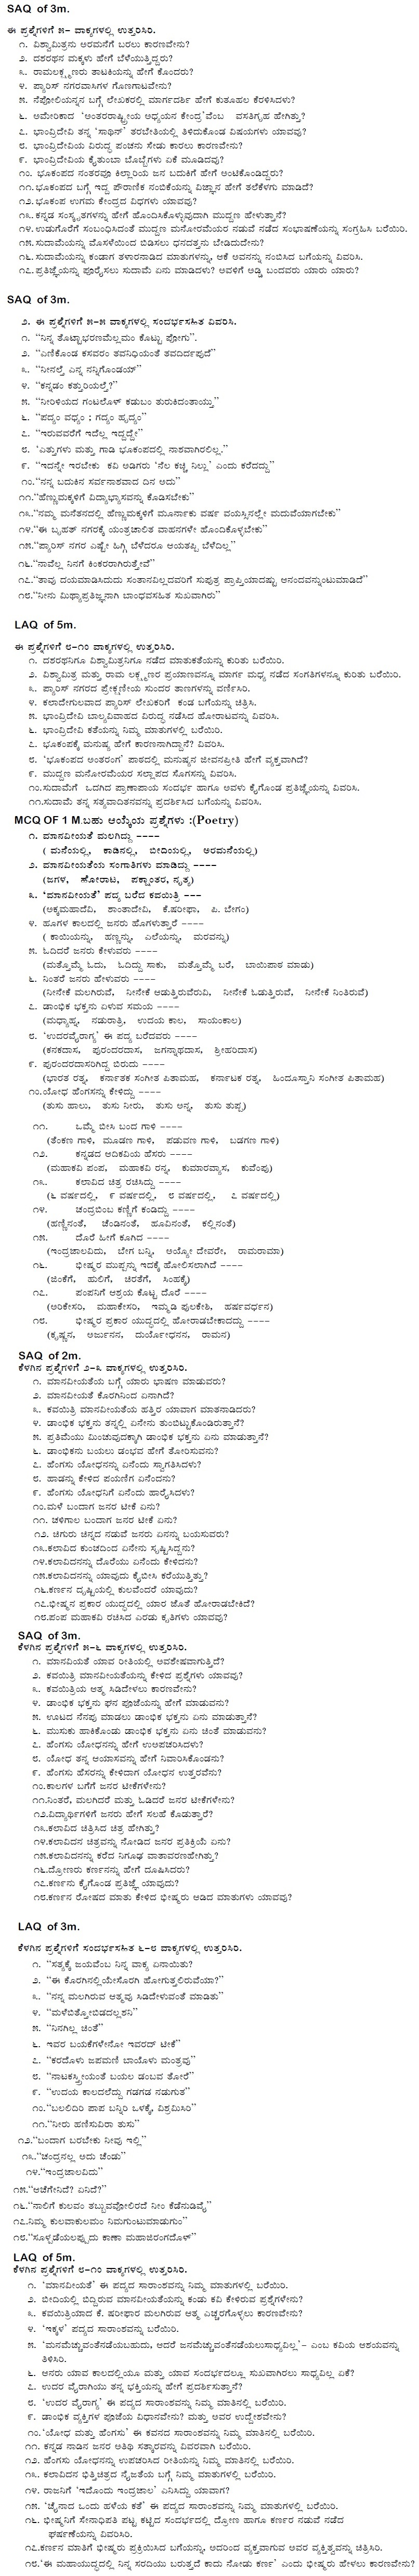 CBSE Class 9 Question Bank - Kannada